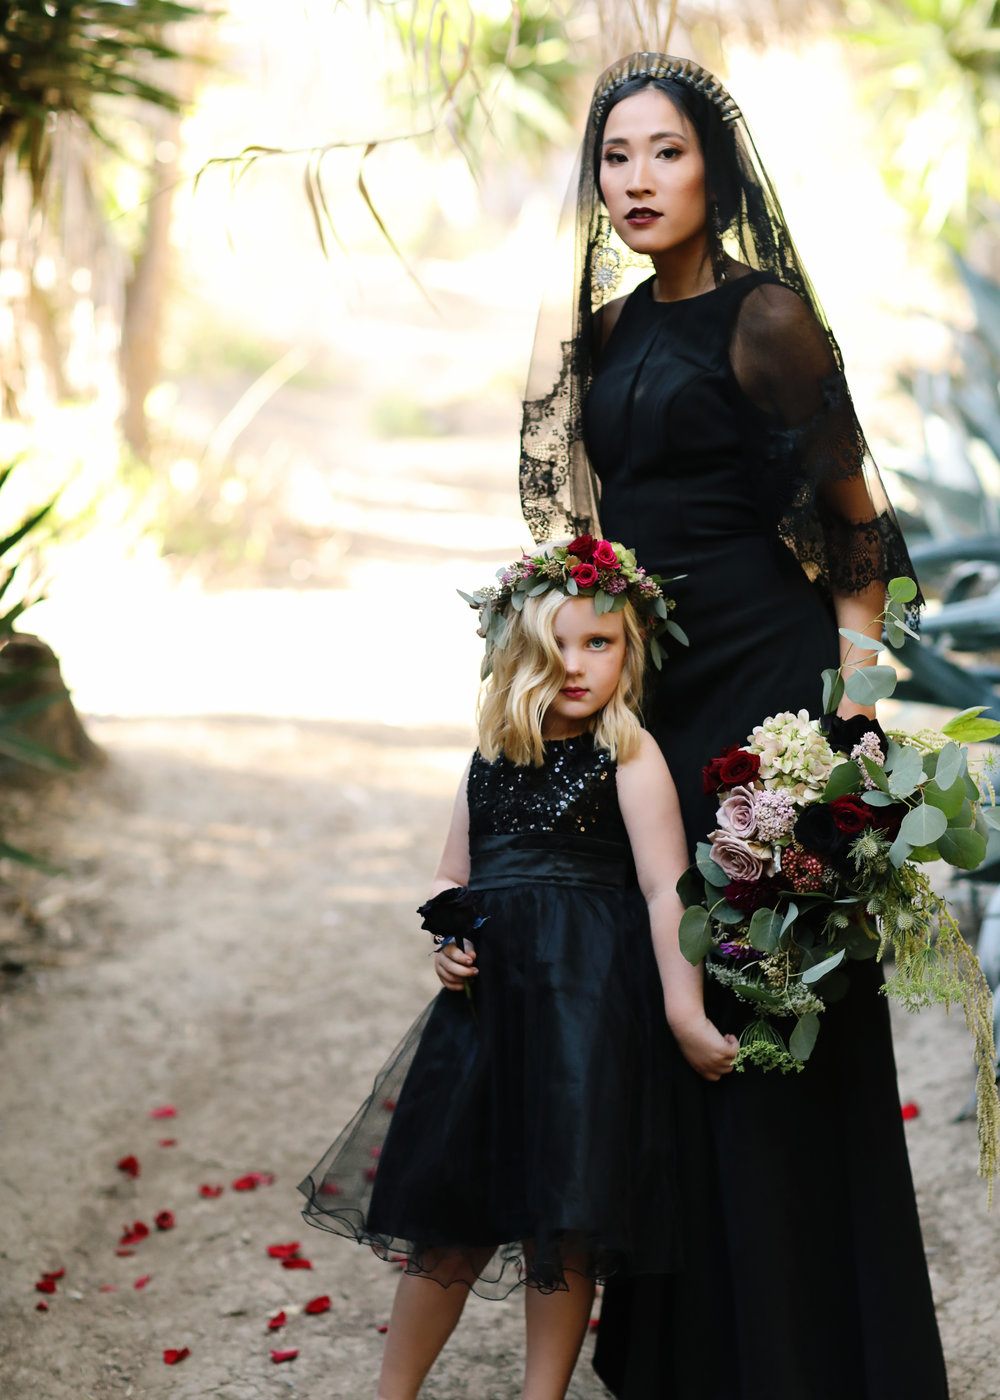 Wedding with Black wedding dress and flower girl in a black dress.